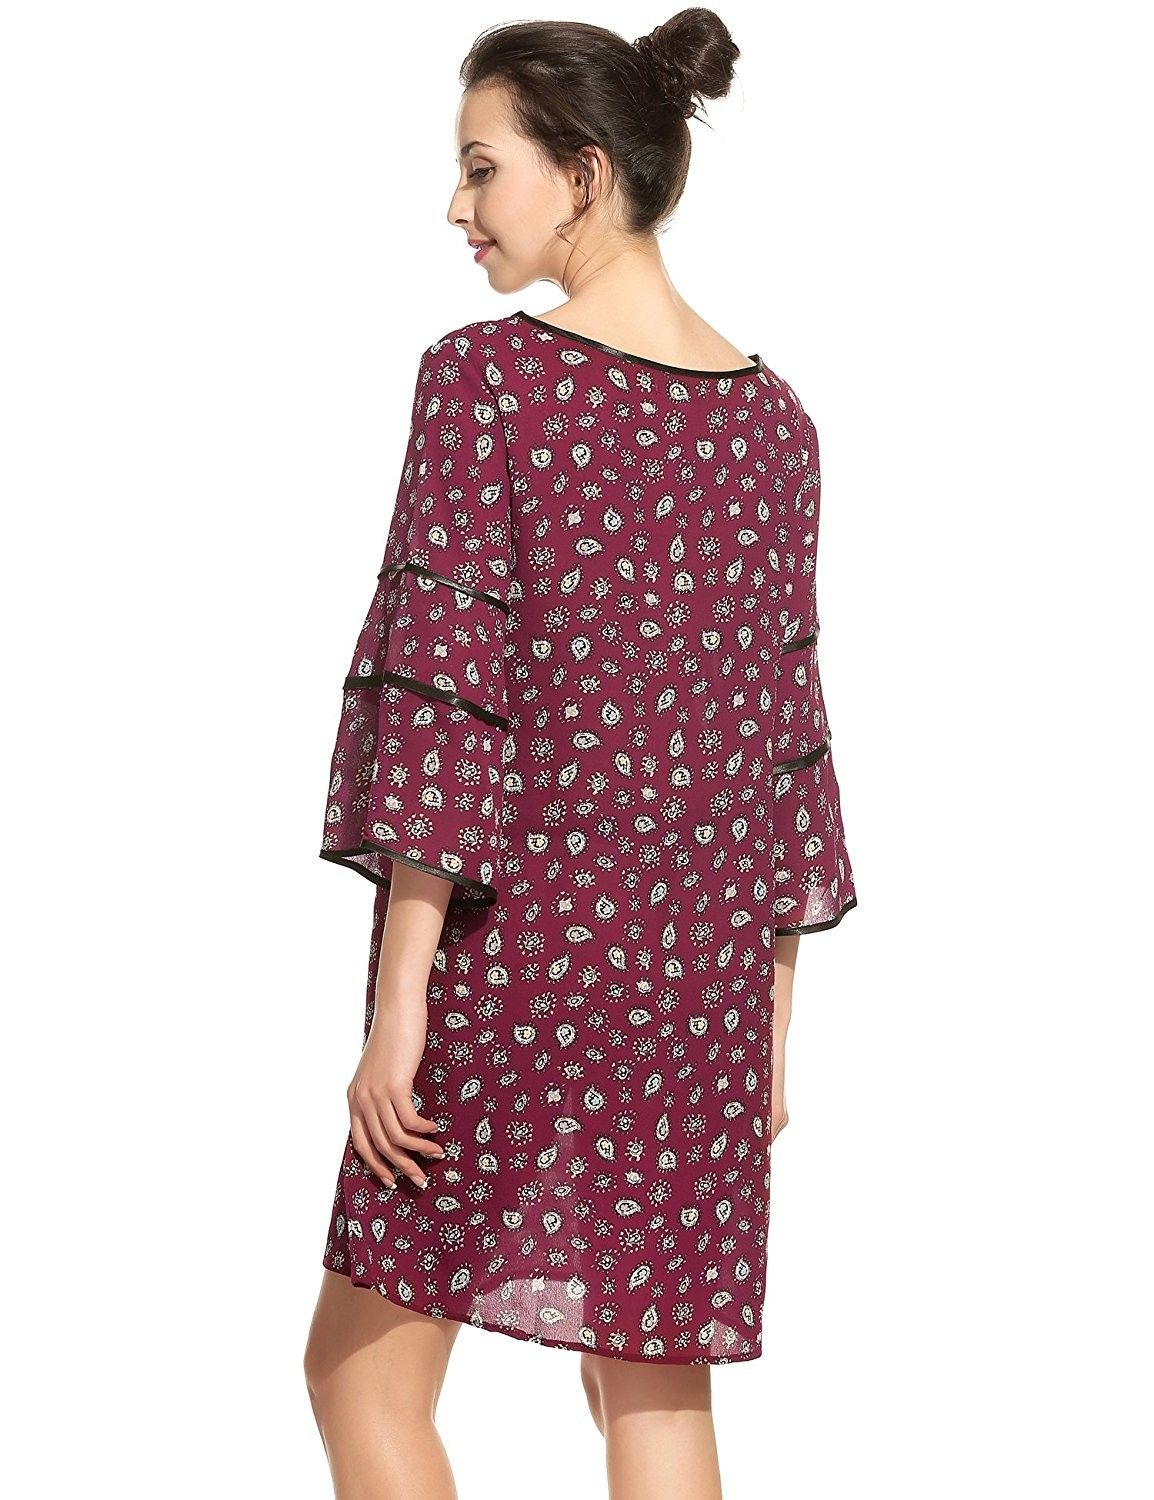 44ee860c8a2 Women Summer Casual Floral Print Ruffle Flare Bell Sleeve 3 4 Sleeve ...